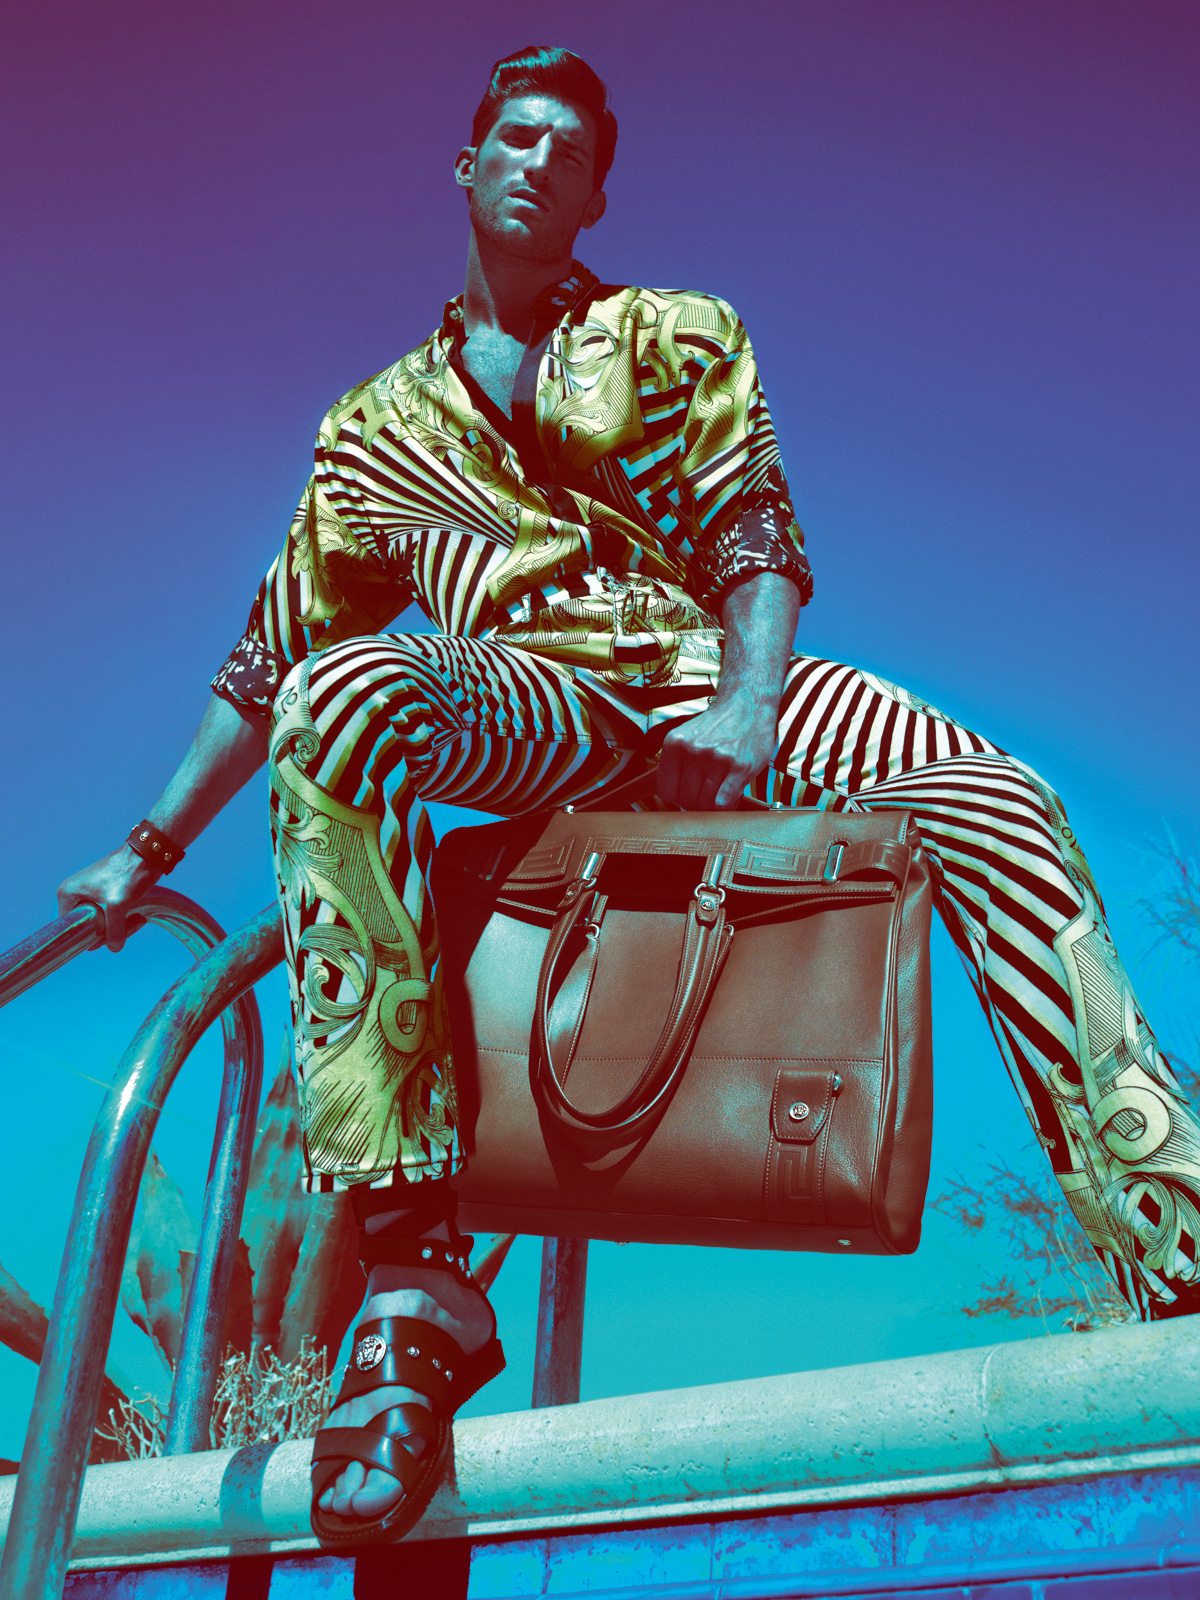 Art8amby S Blog: Versace Spring Summer 2012 Ad Campaign